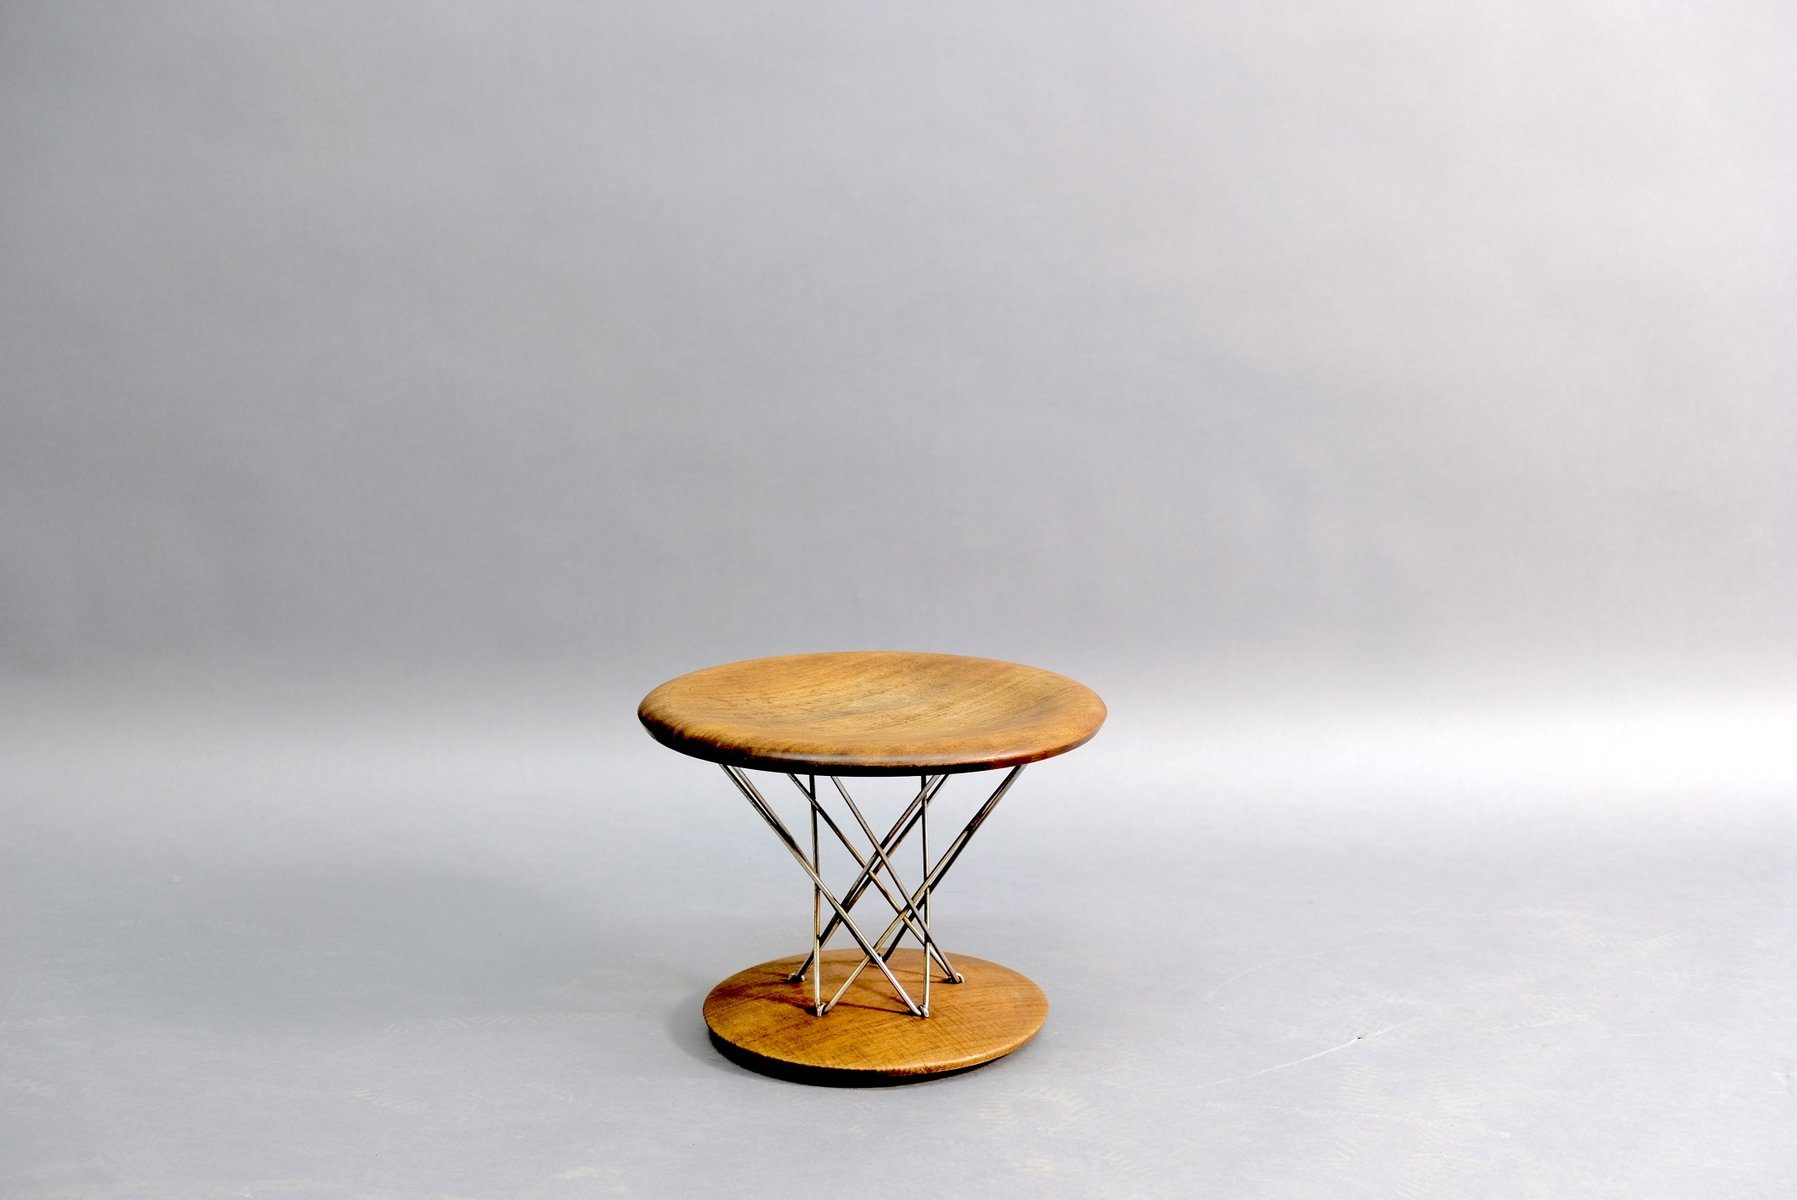 Mid-Century Rocking Hocker von Isamu Noguchi für Knoll Inc. / Knoll International